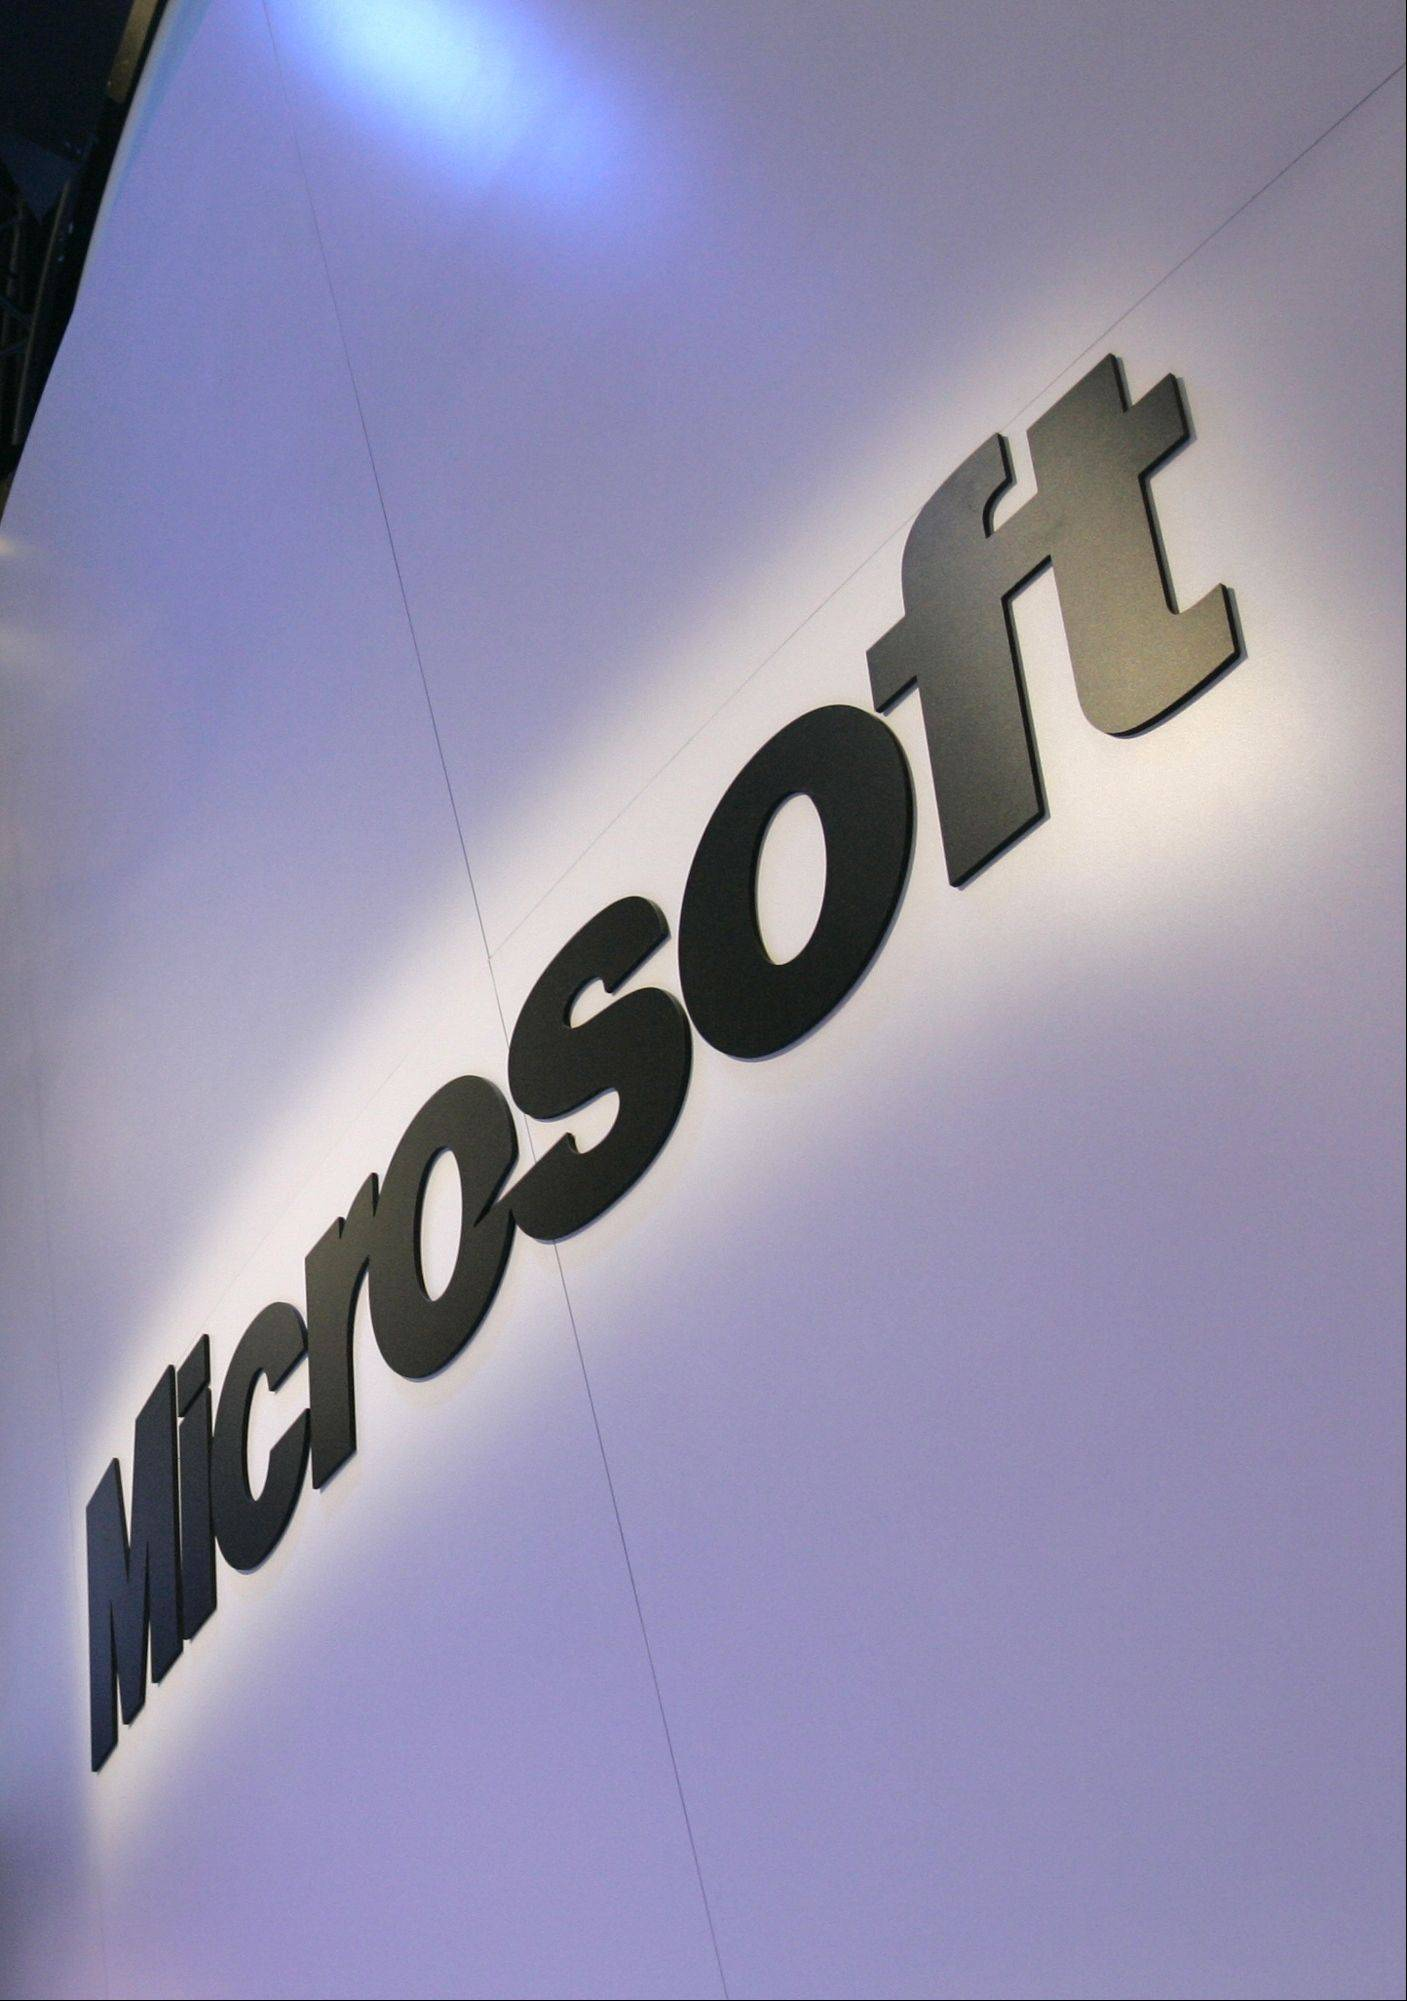 The Appalachian Regional Commission announced Microsoft�s second economic-development donation to the region in six years Wednesday in Washington, D.C.